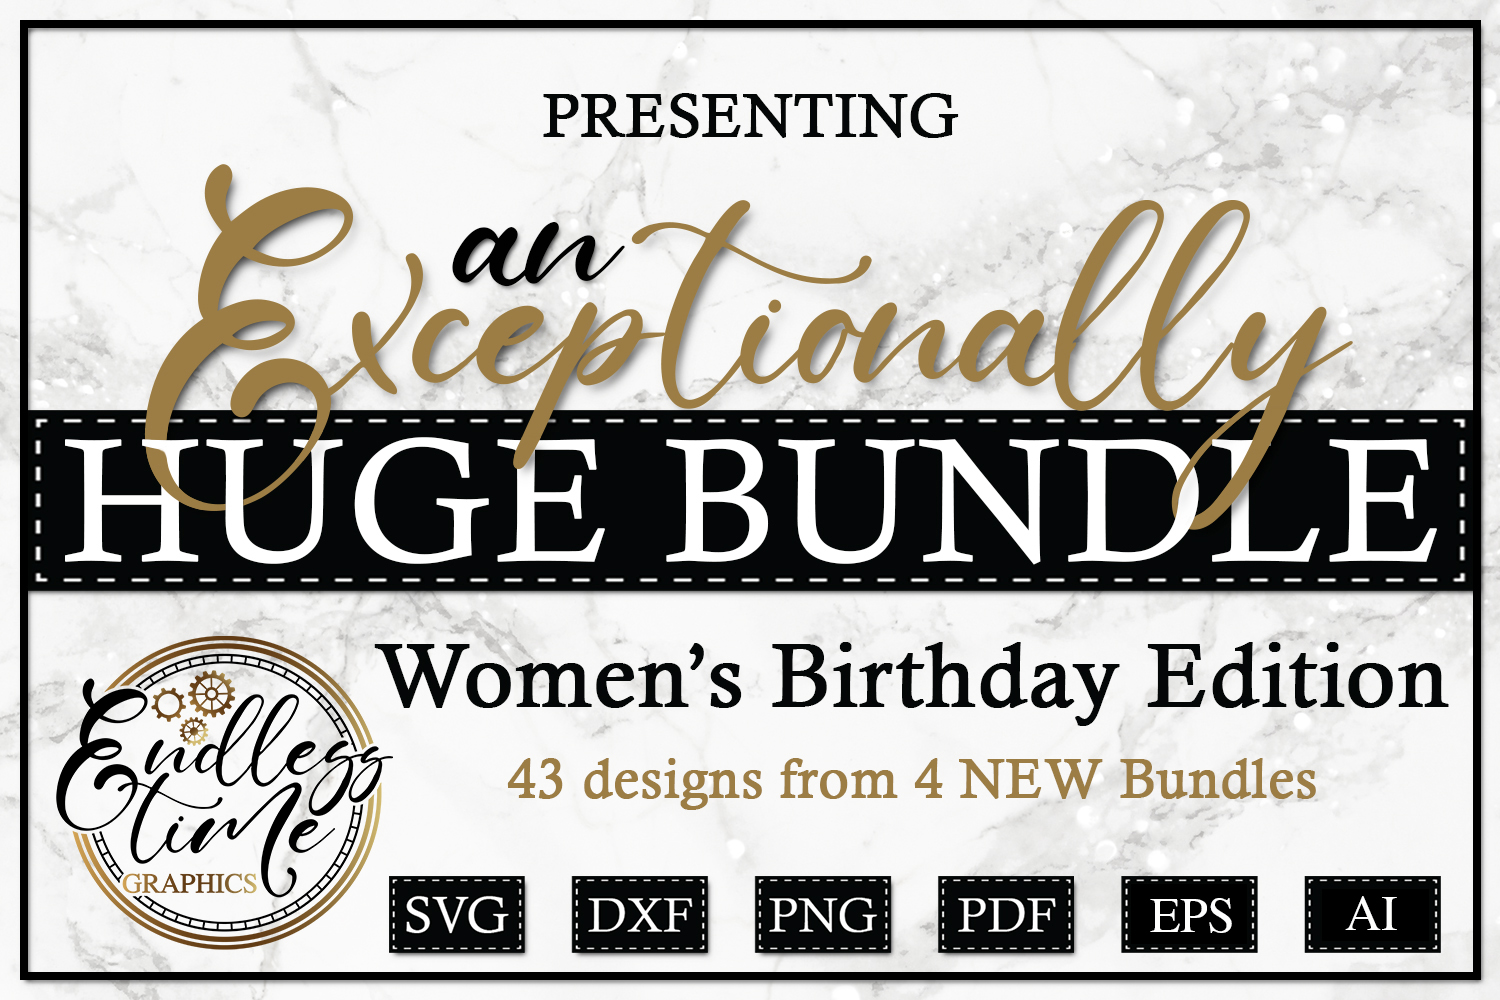 An Exceptionally Huge Bundle - Women's Birthday Edition example image 1